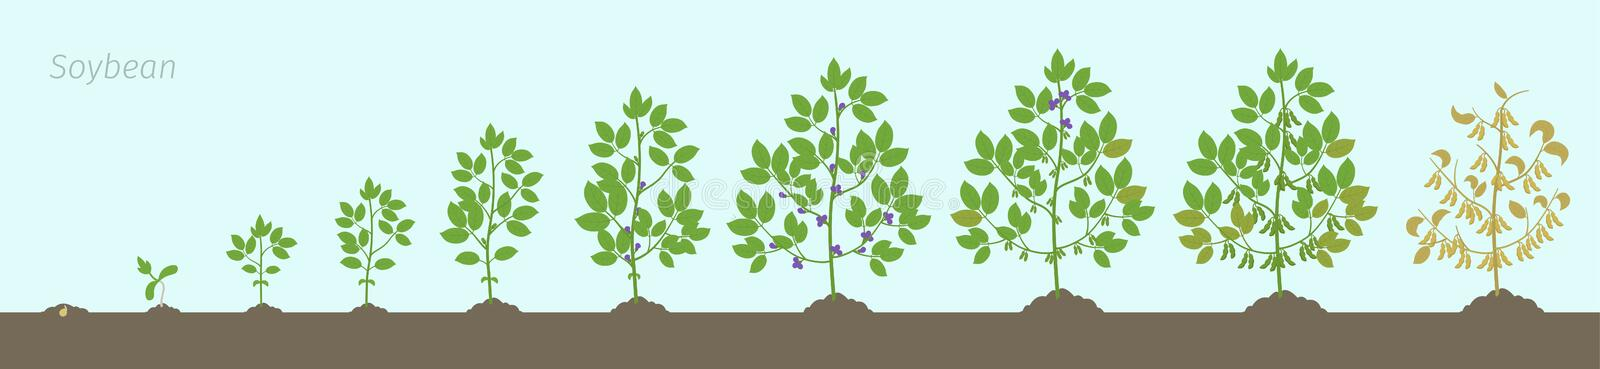 Growth stages of Soybean plant. Soya bean phases set ripening period. Glycine max life cycle, animation progression In the soil. Growth stages of Soybean plant vector illustration